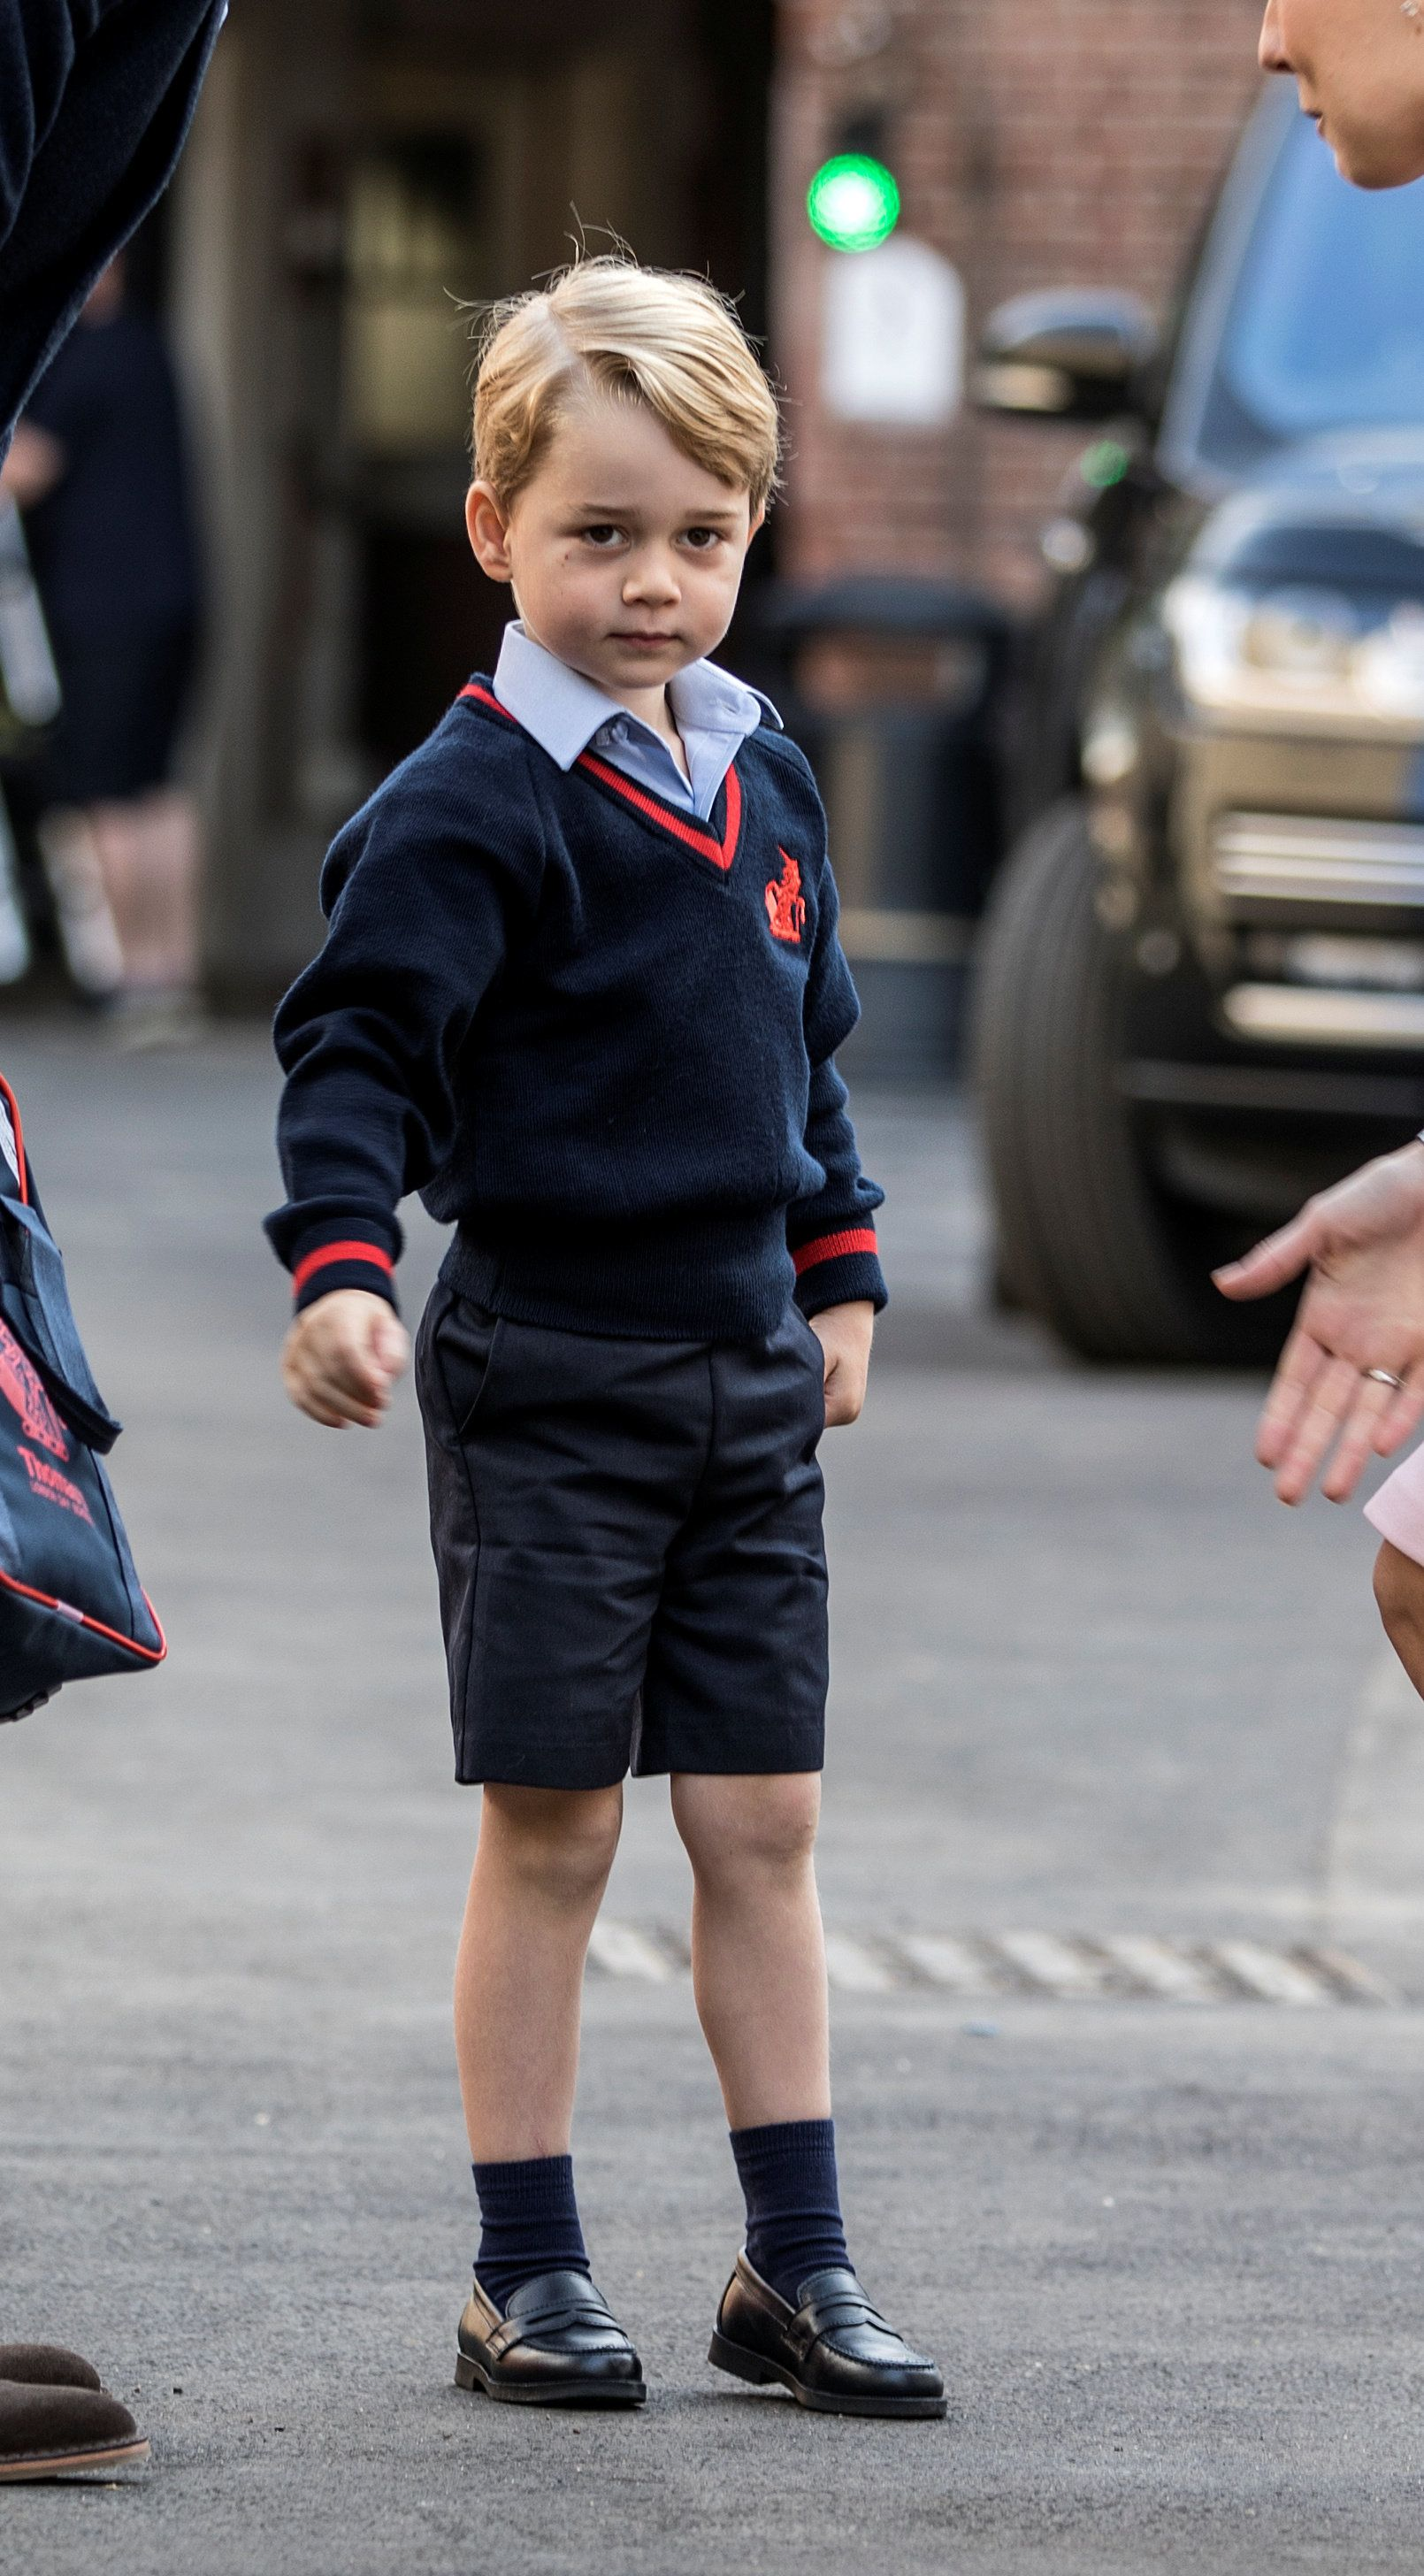 Britain's Prince George arrives on his first day of school at Thomas's school in Battersea, London, September 7, 2017. REUTERS/Richard Pohle/Pool